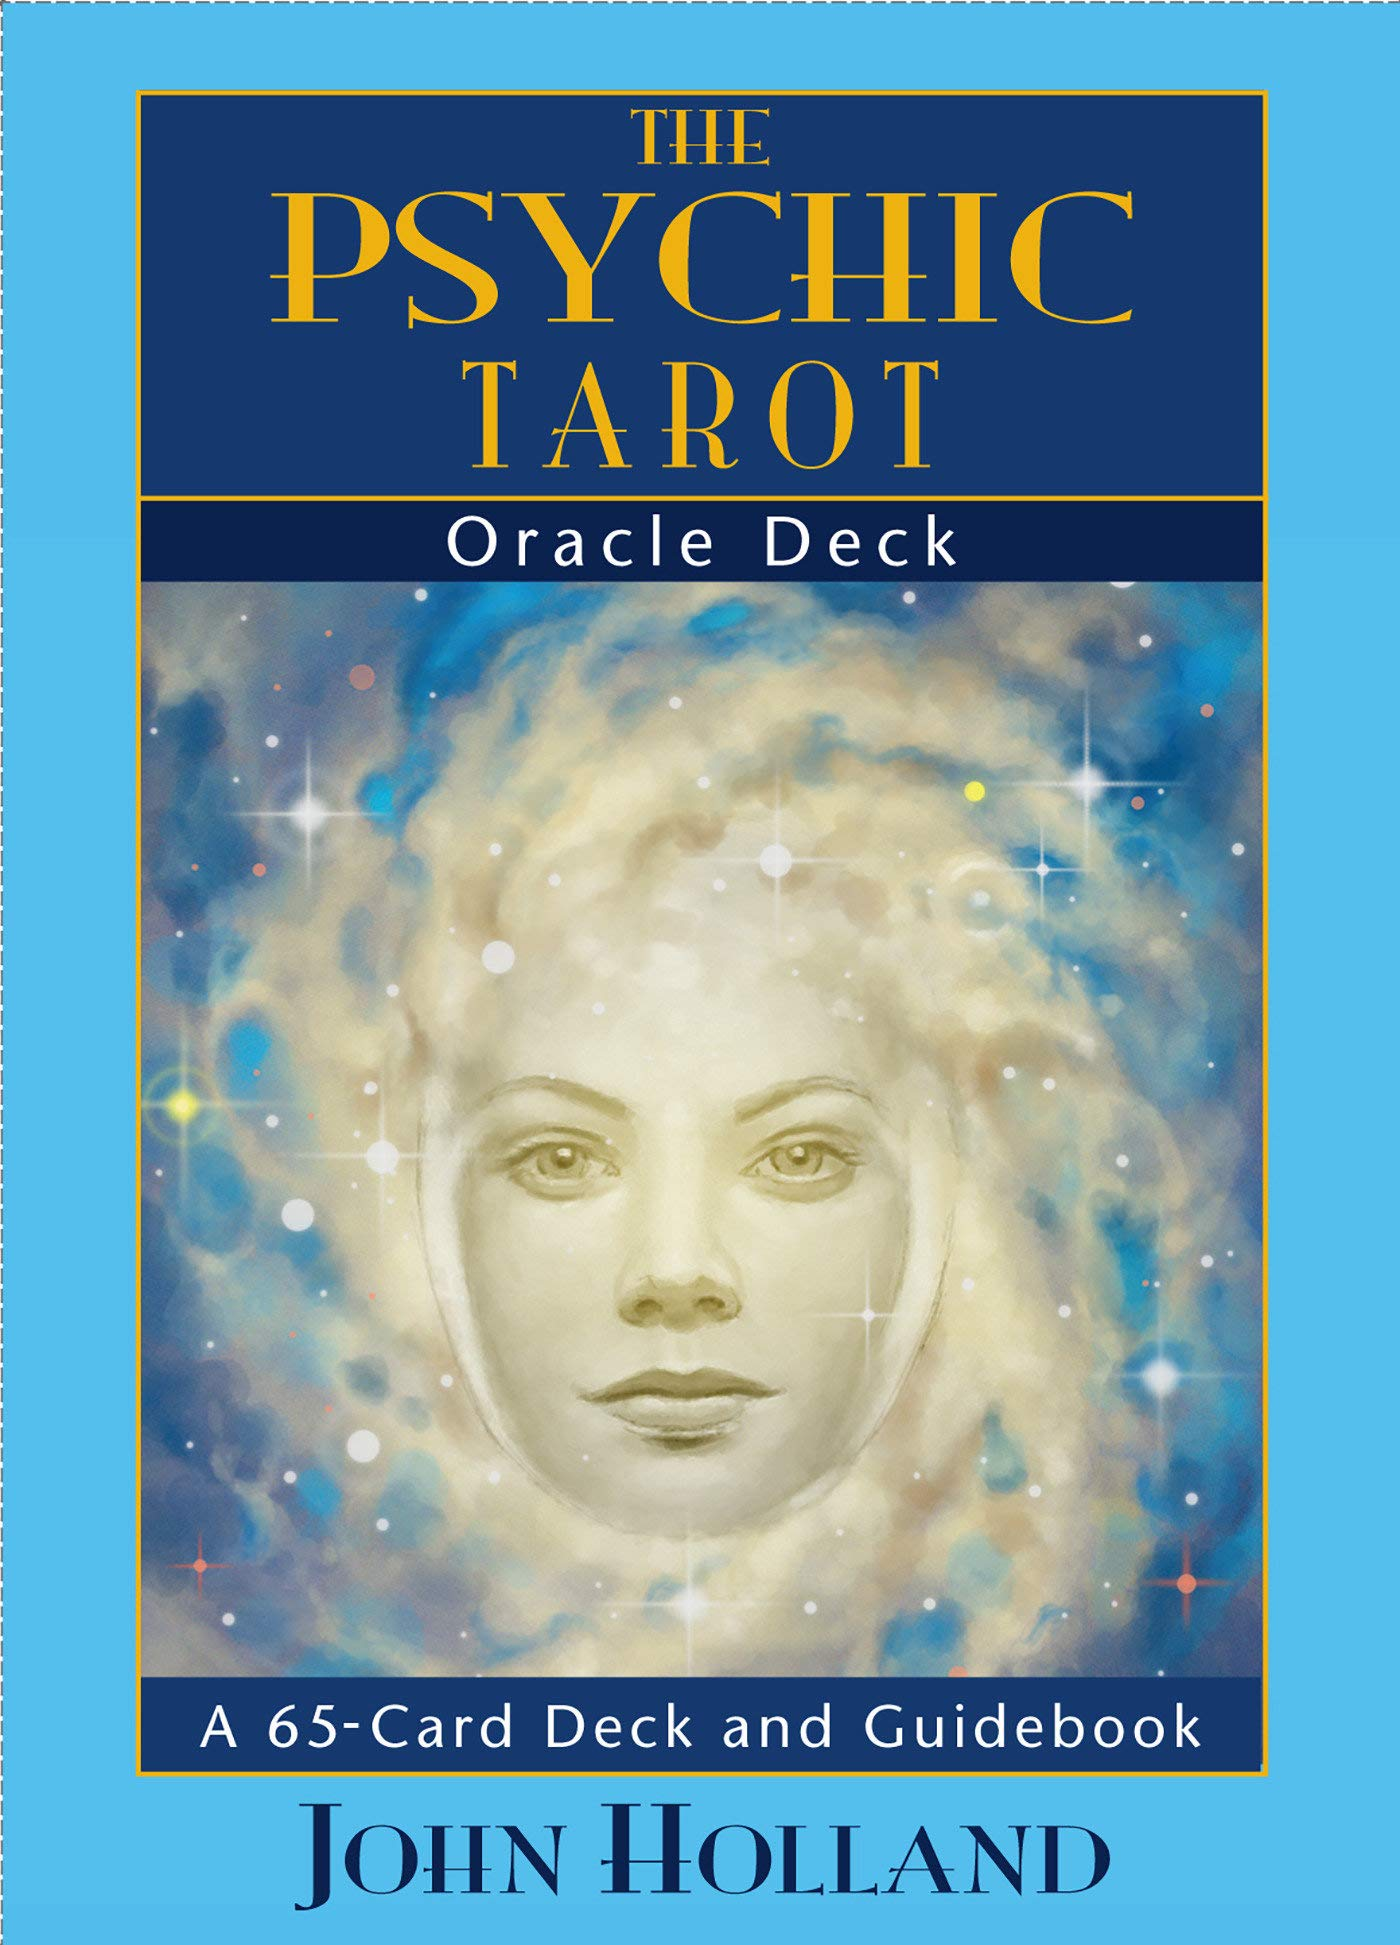 The Psychic Tarot Oracle Cards: a 65-Card Deck and Guidebook